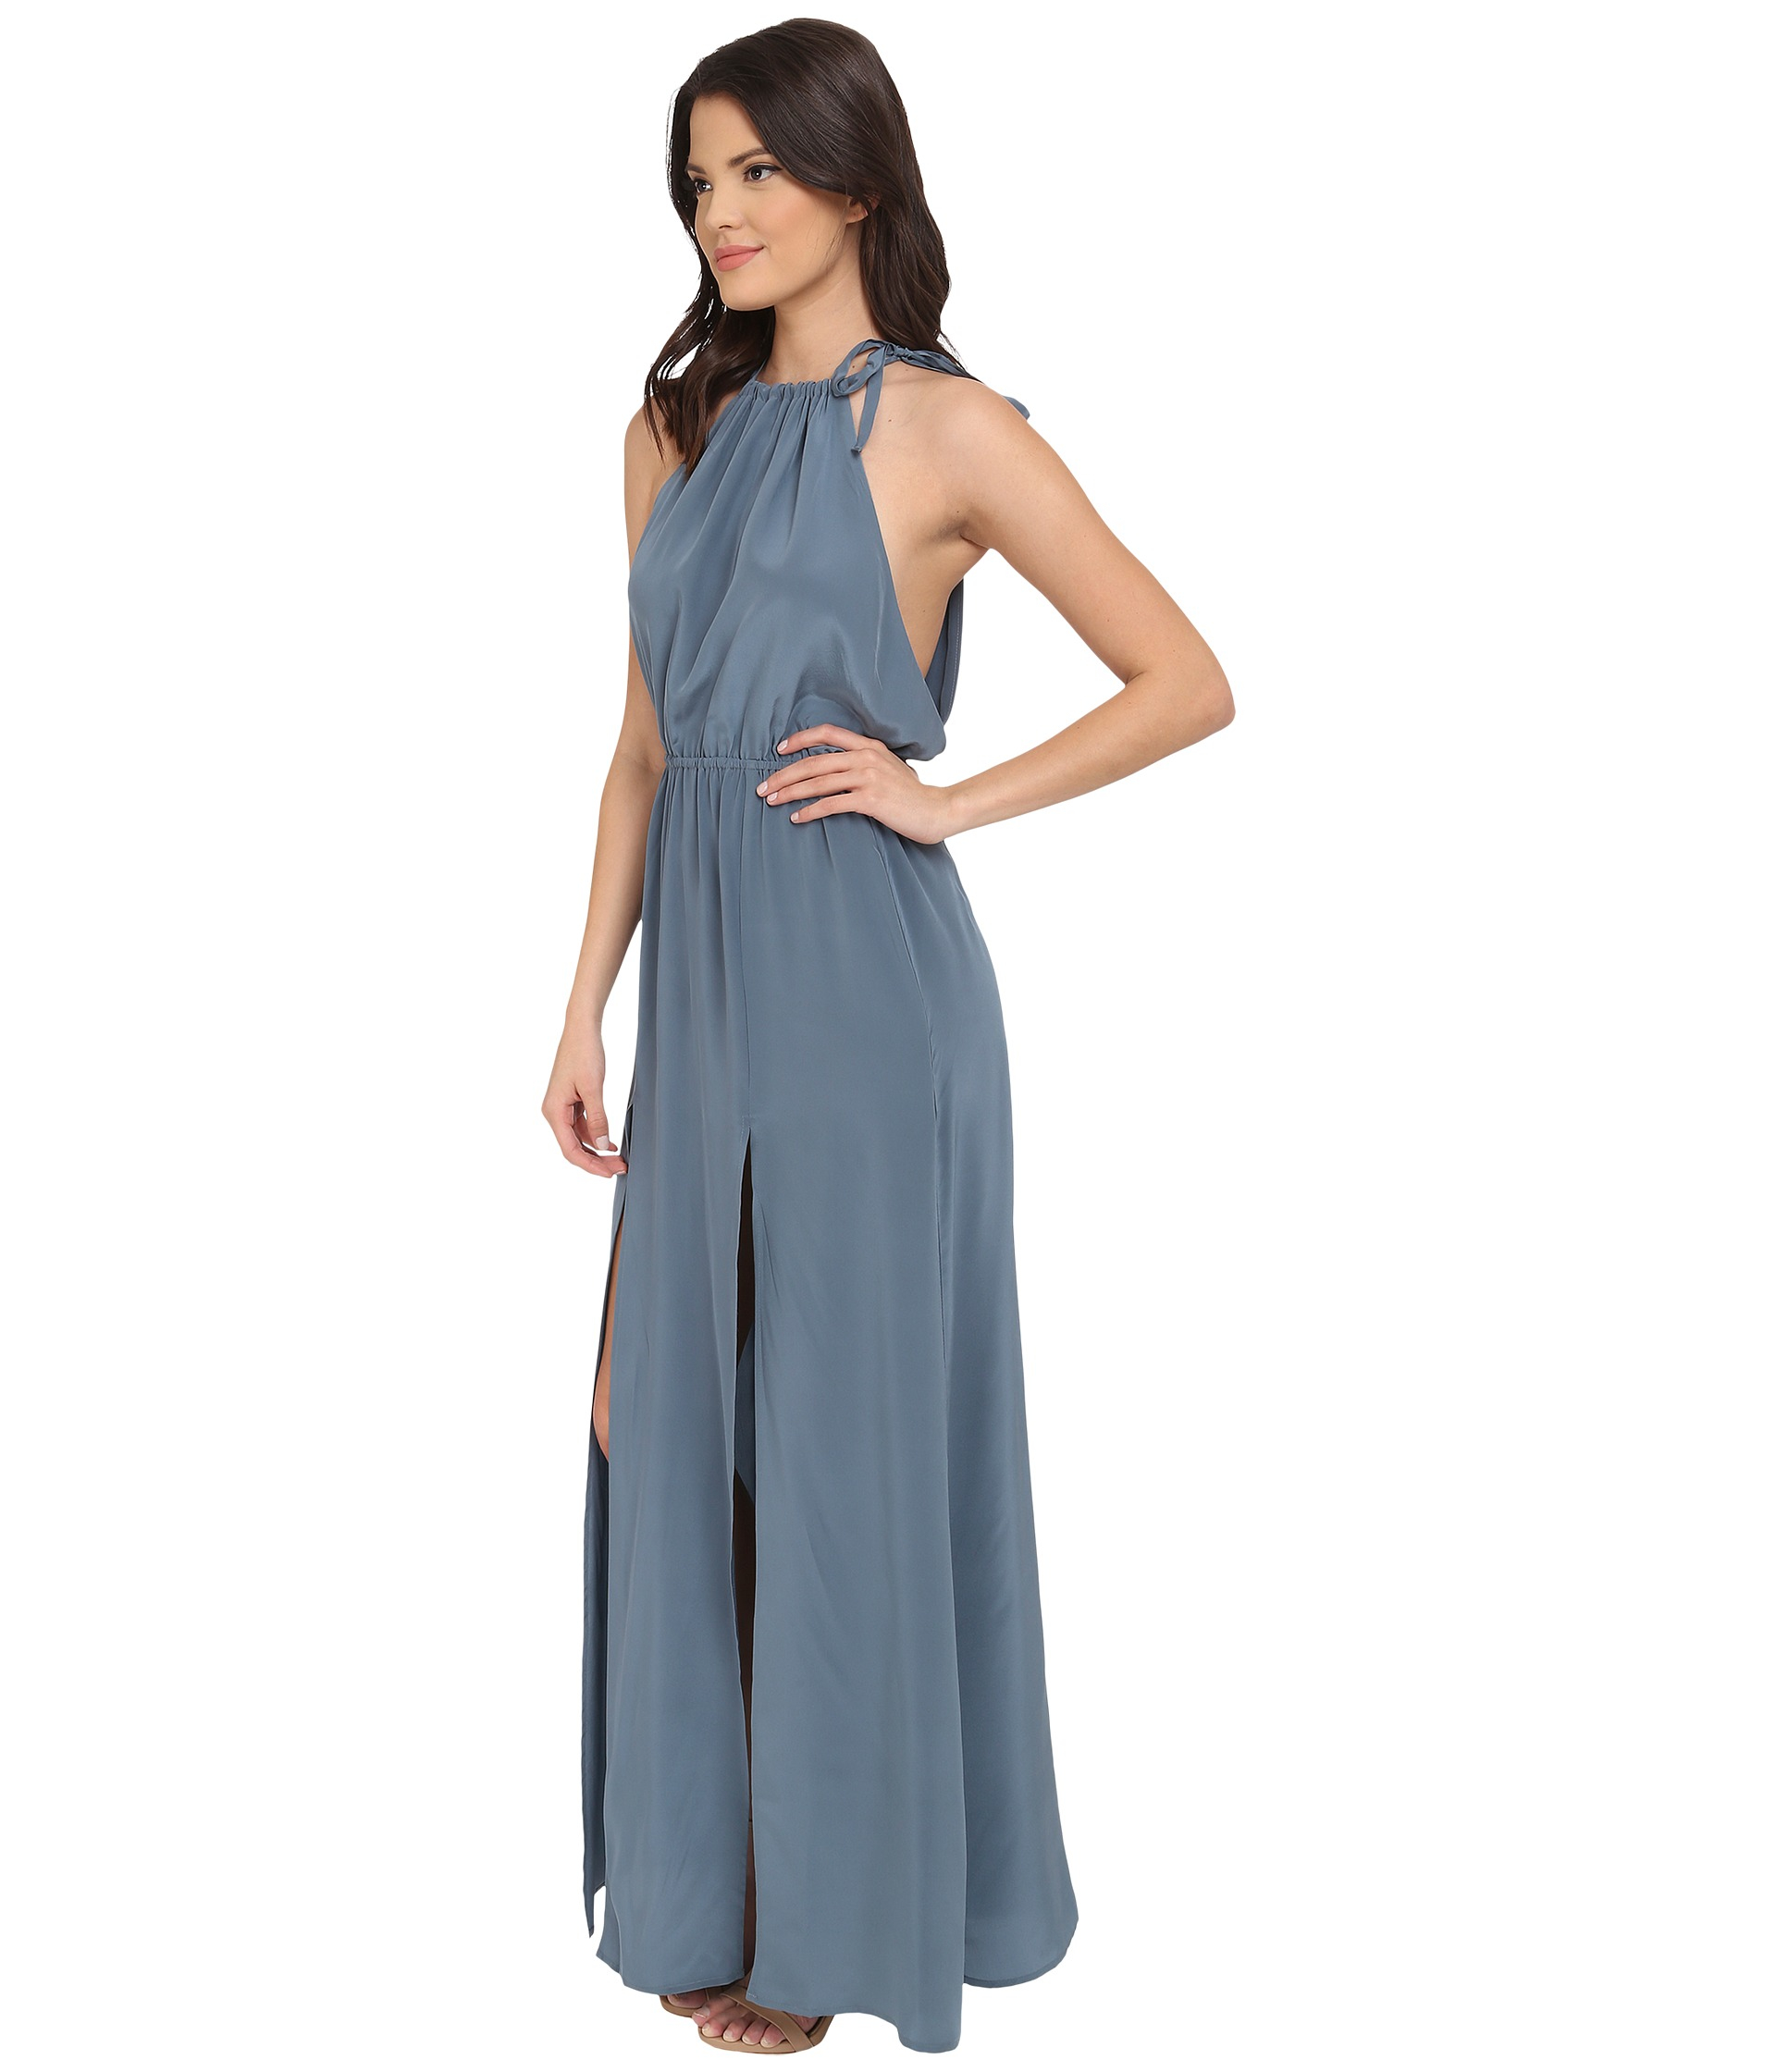 Lyst - Stone Cold Fox Onyx Gown in Gray